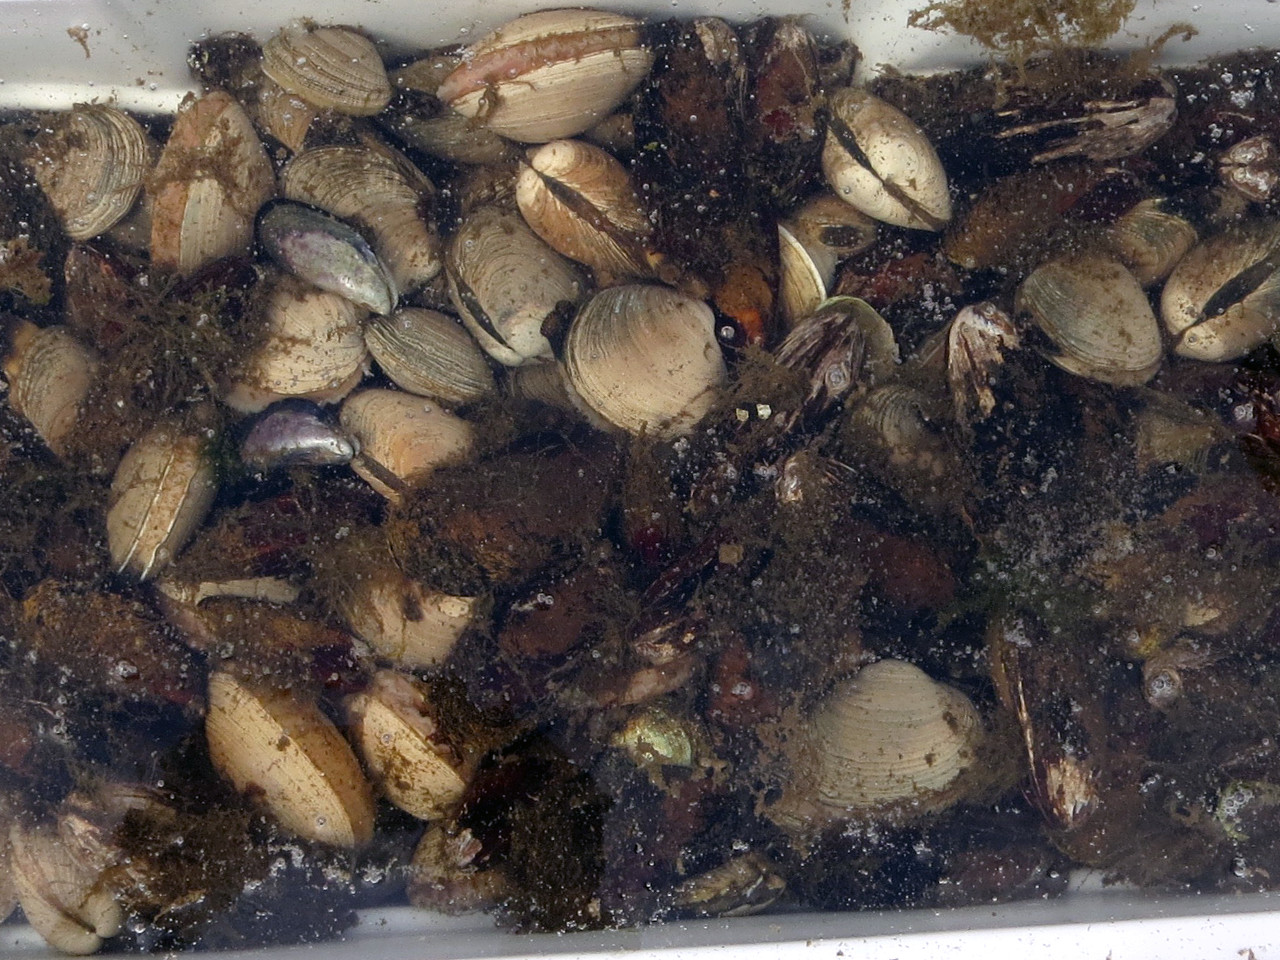 Fresh Alaskan clams, cleaning in saltwater. Alaskan Escape – Thorne Bay, AK